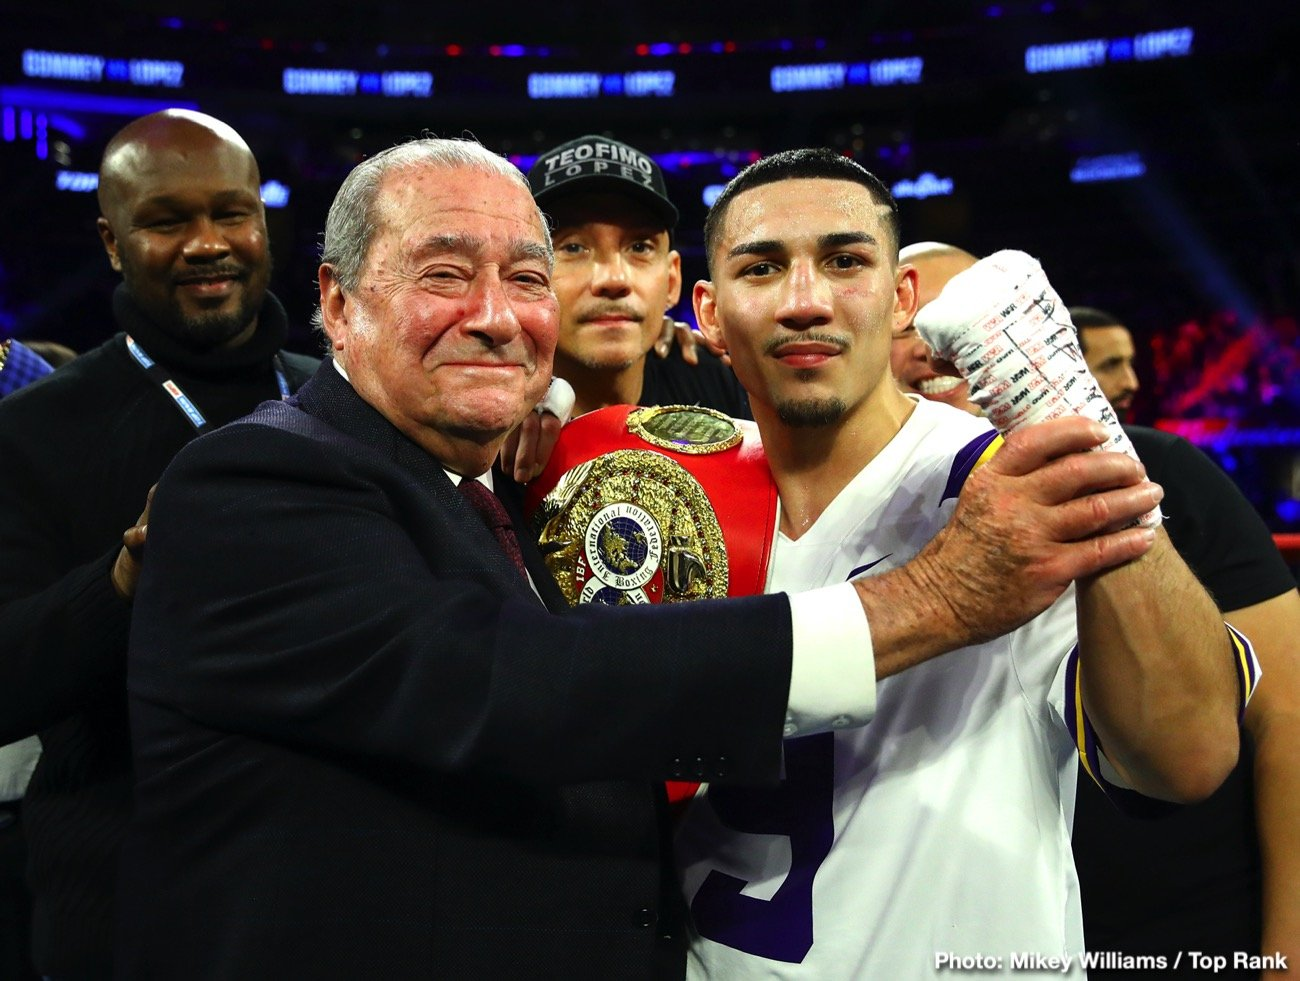 Manny Pacquiao Teofimo Lopez Terence Crawford